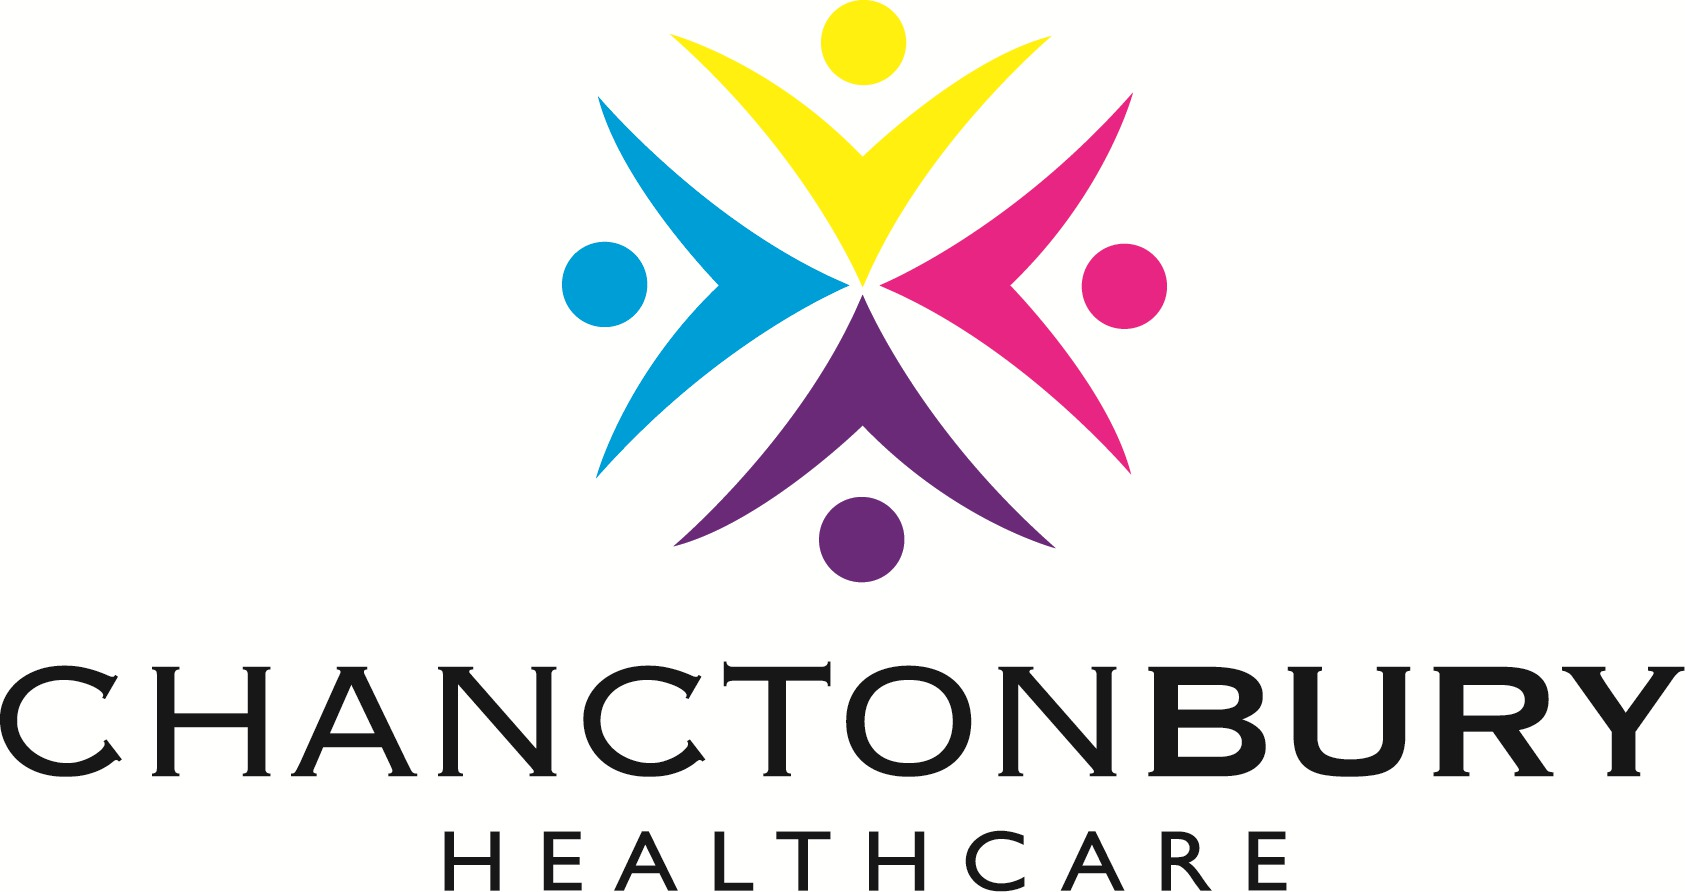 Chanctonbury Healthcare